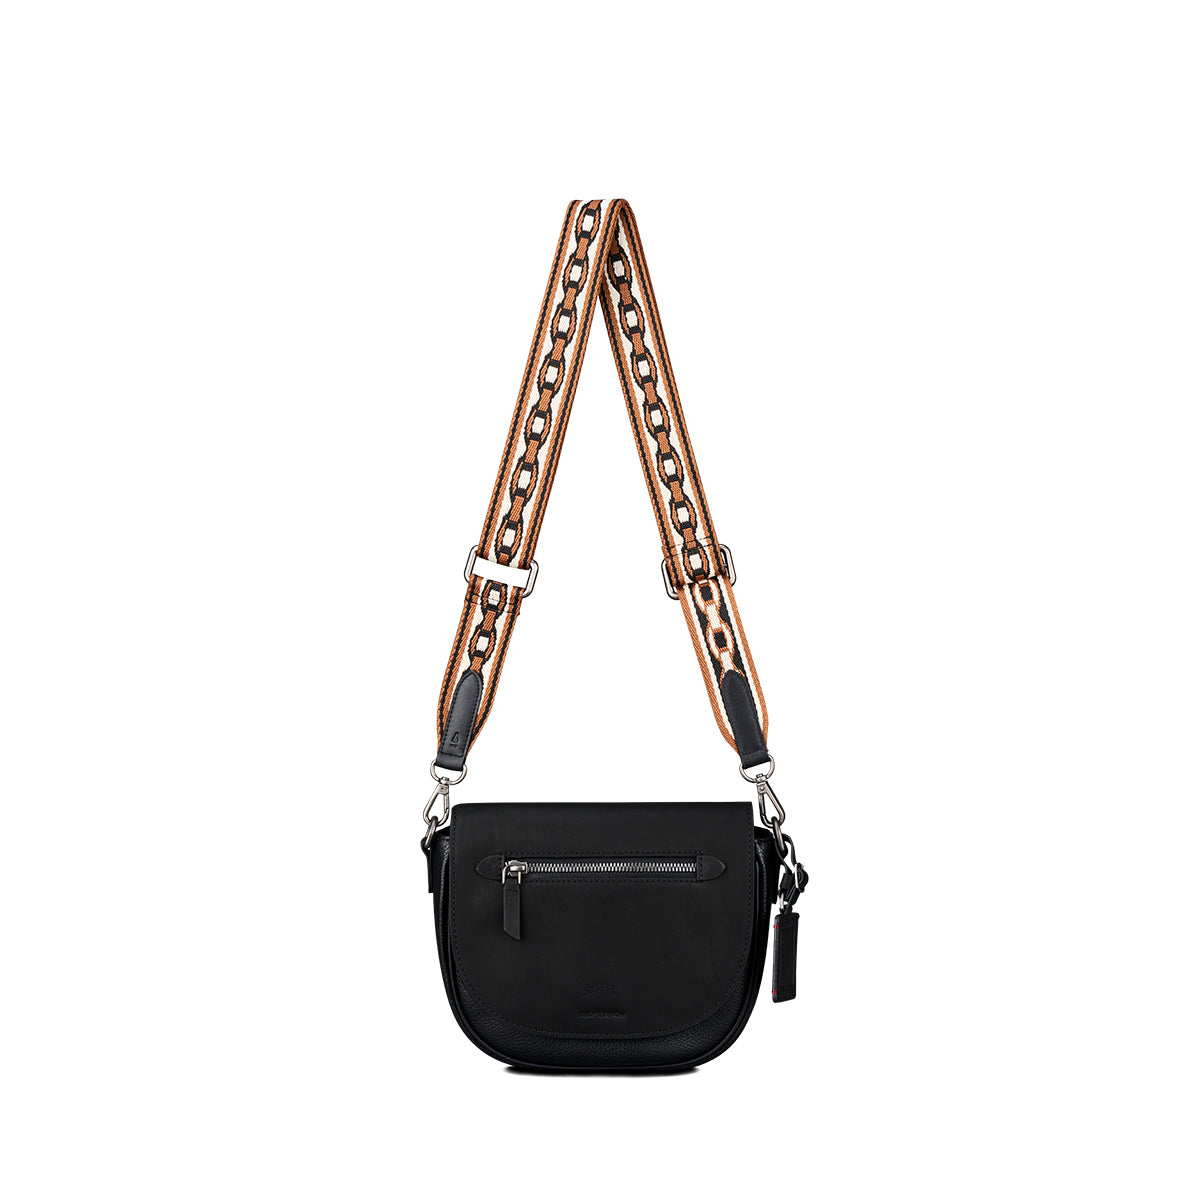 Chain Webbing Bag Strap